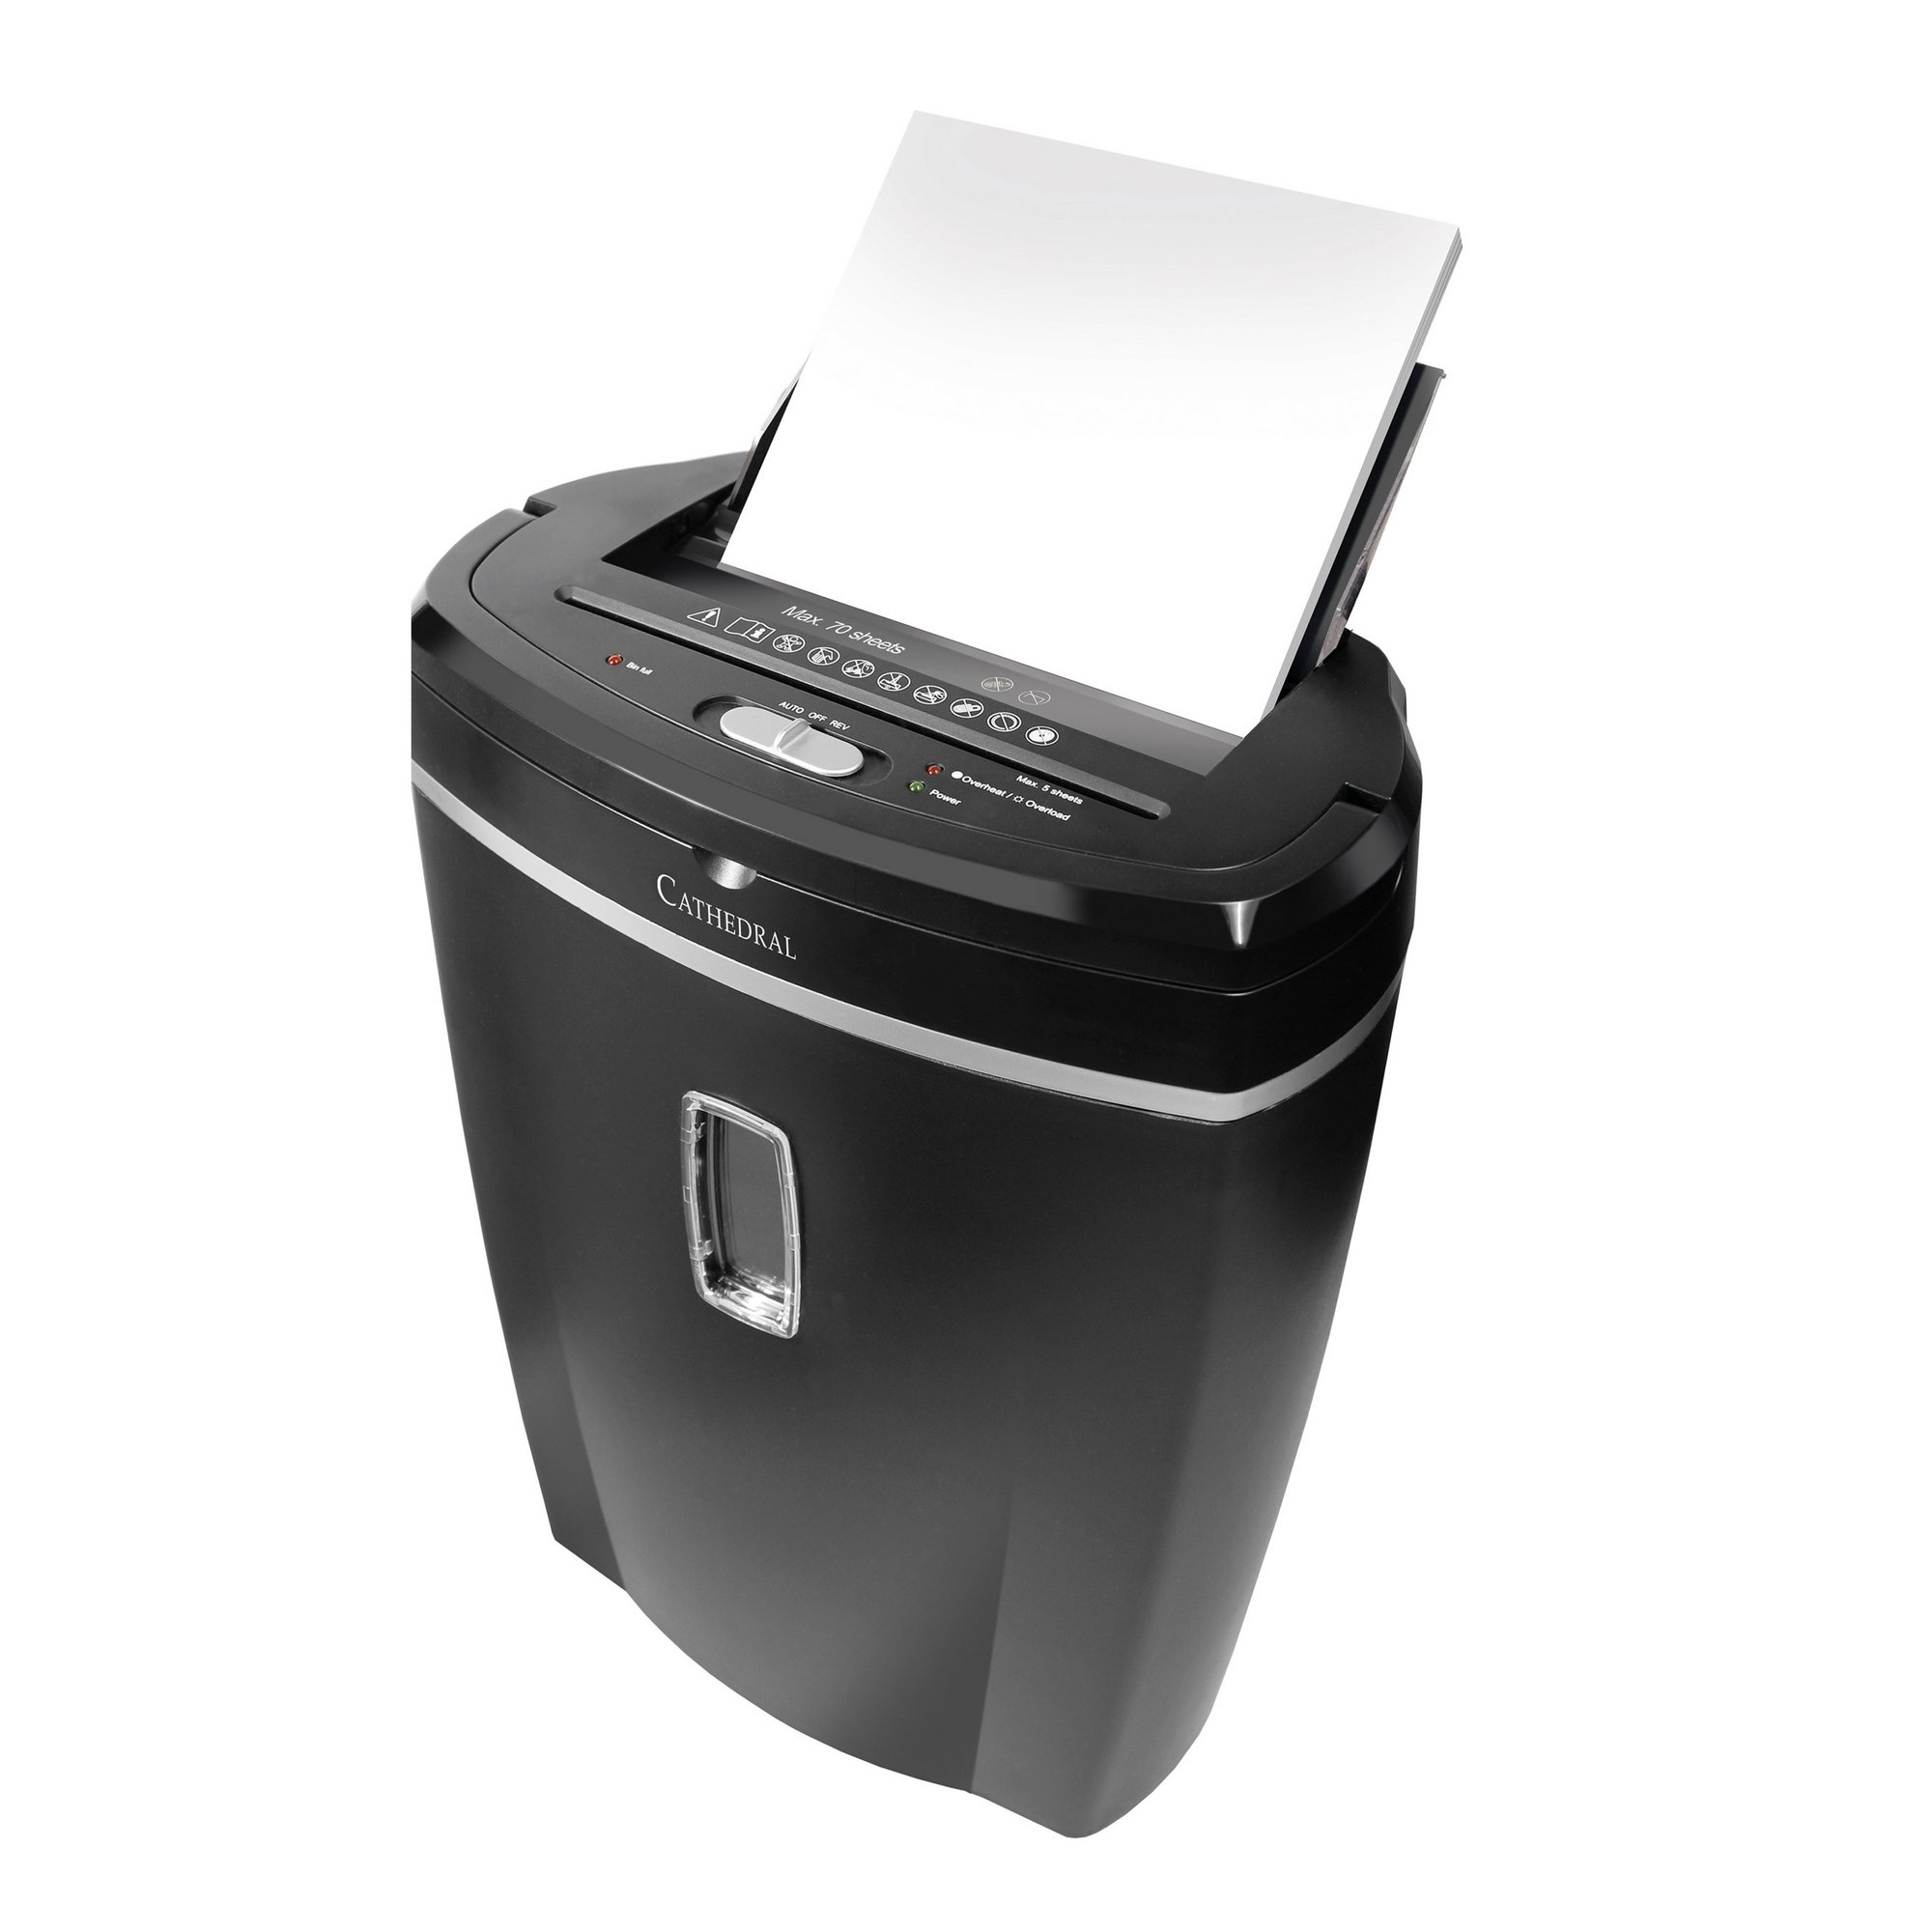 Image of Cathedral 70 Sheet Cross Cut Shredder